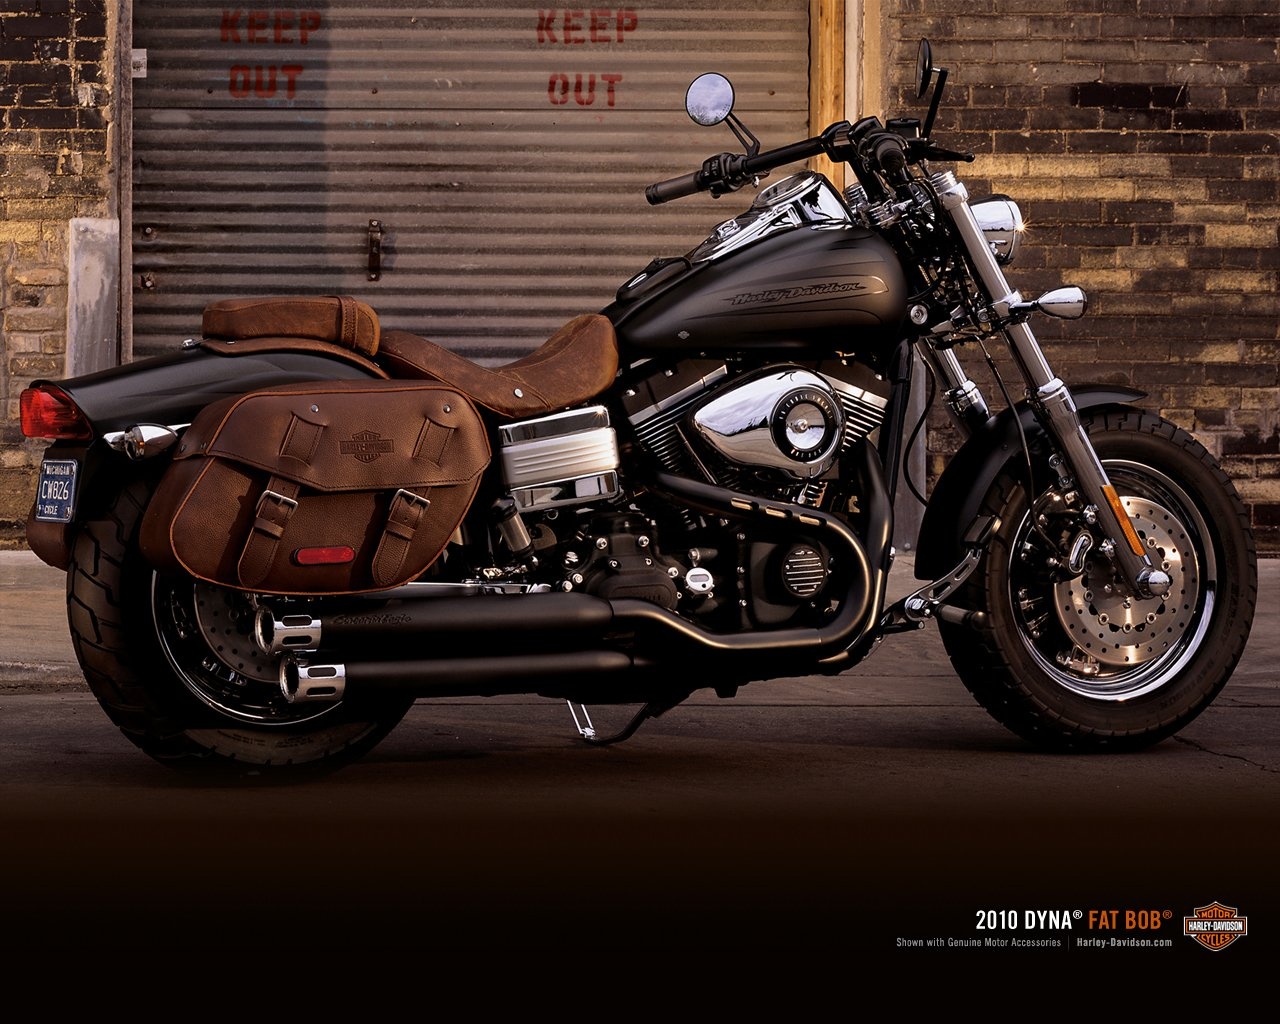 Harley Davidson Fat Bob 2010 wallpaper 61776 1280x1024